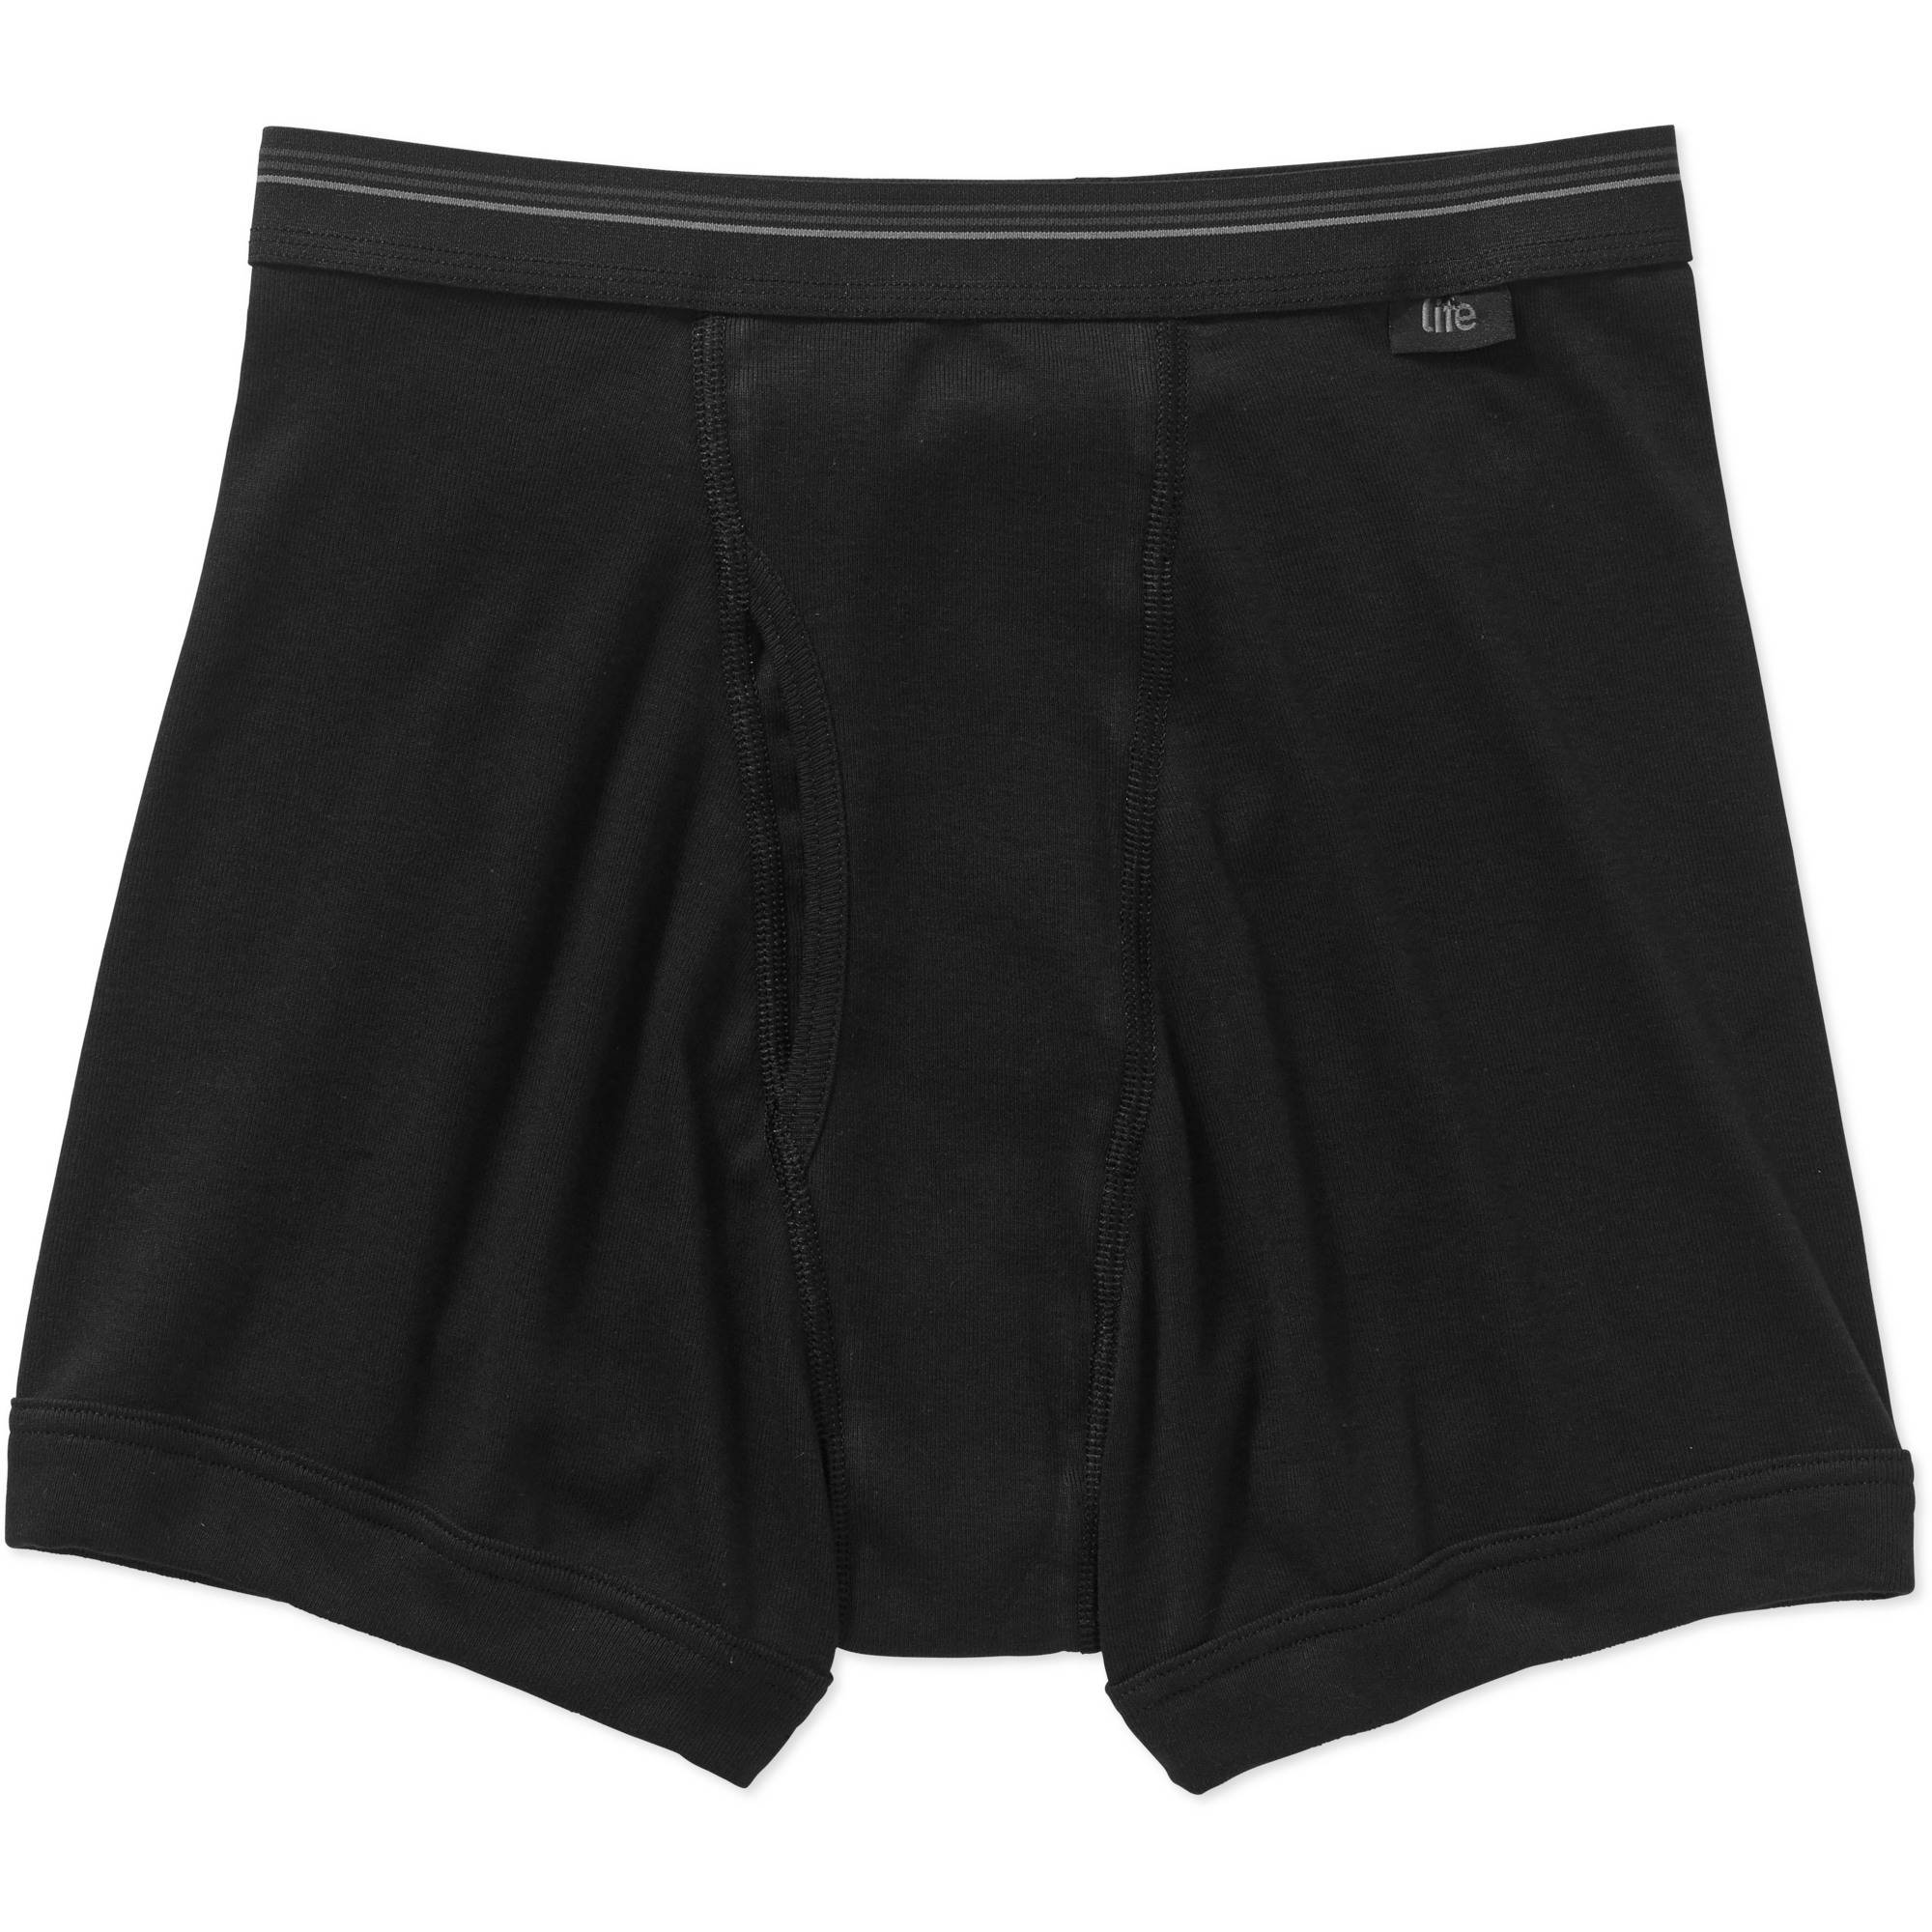 Life by Jockey Assorted Cotton Boxer Brief, 3 pack